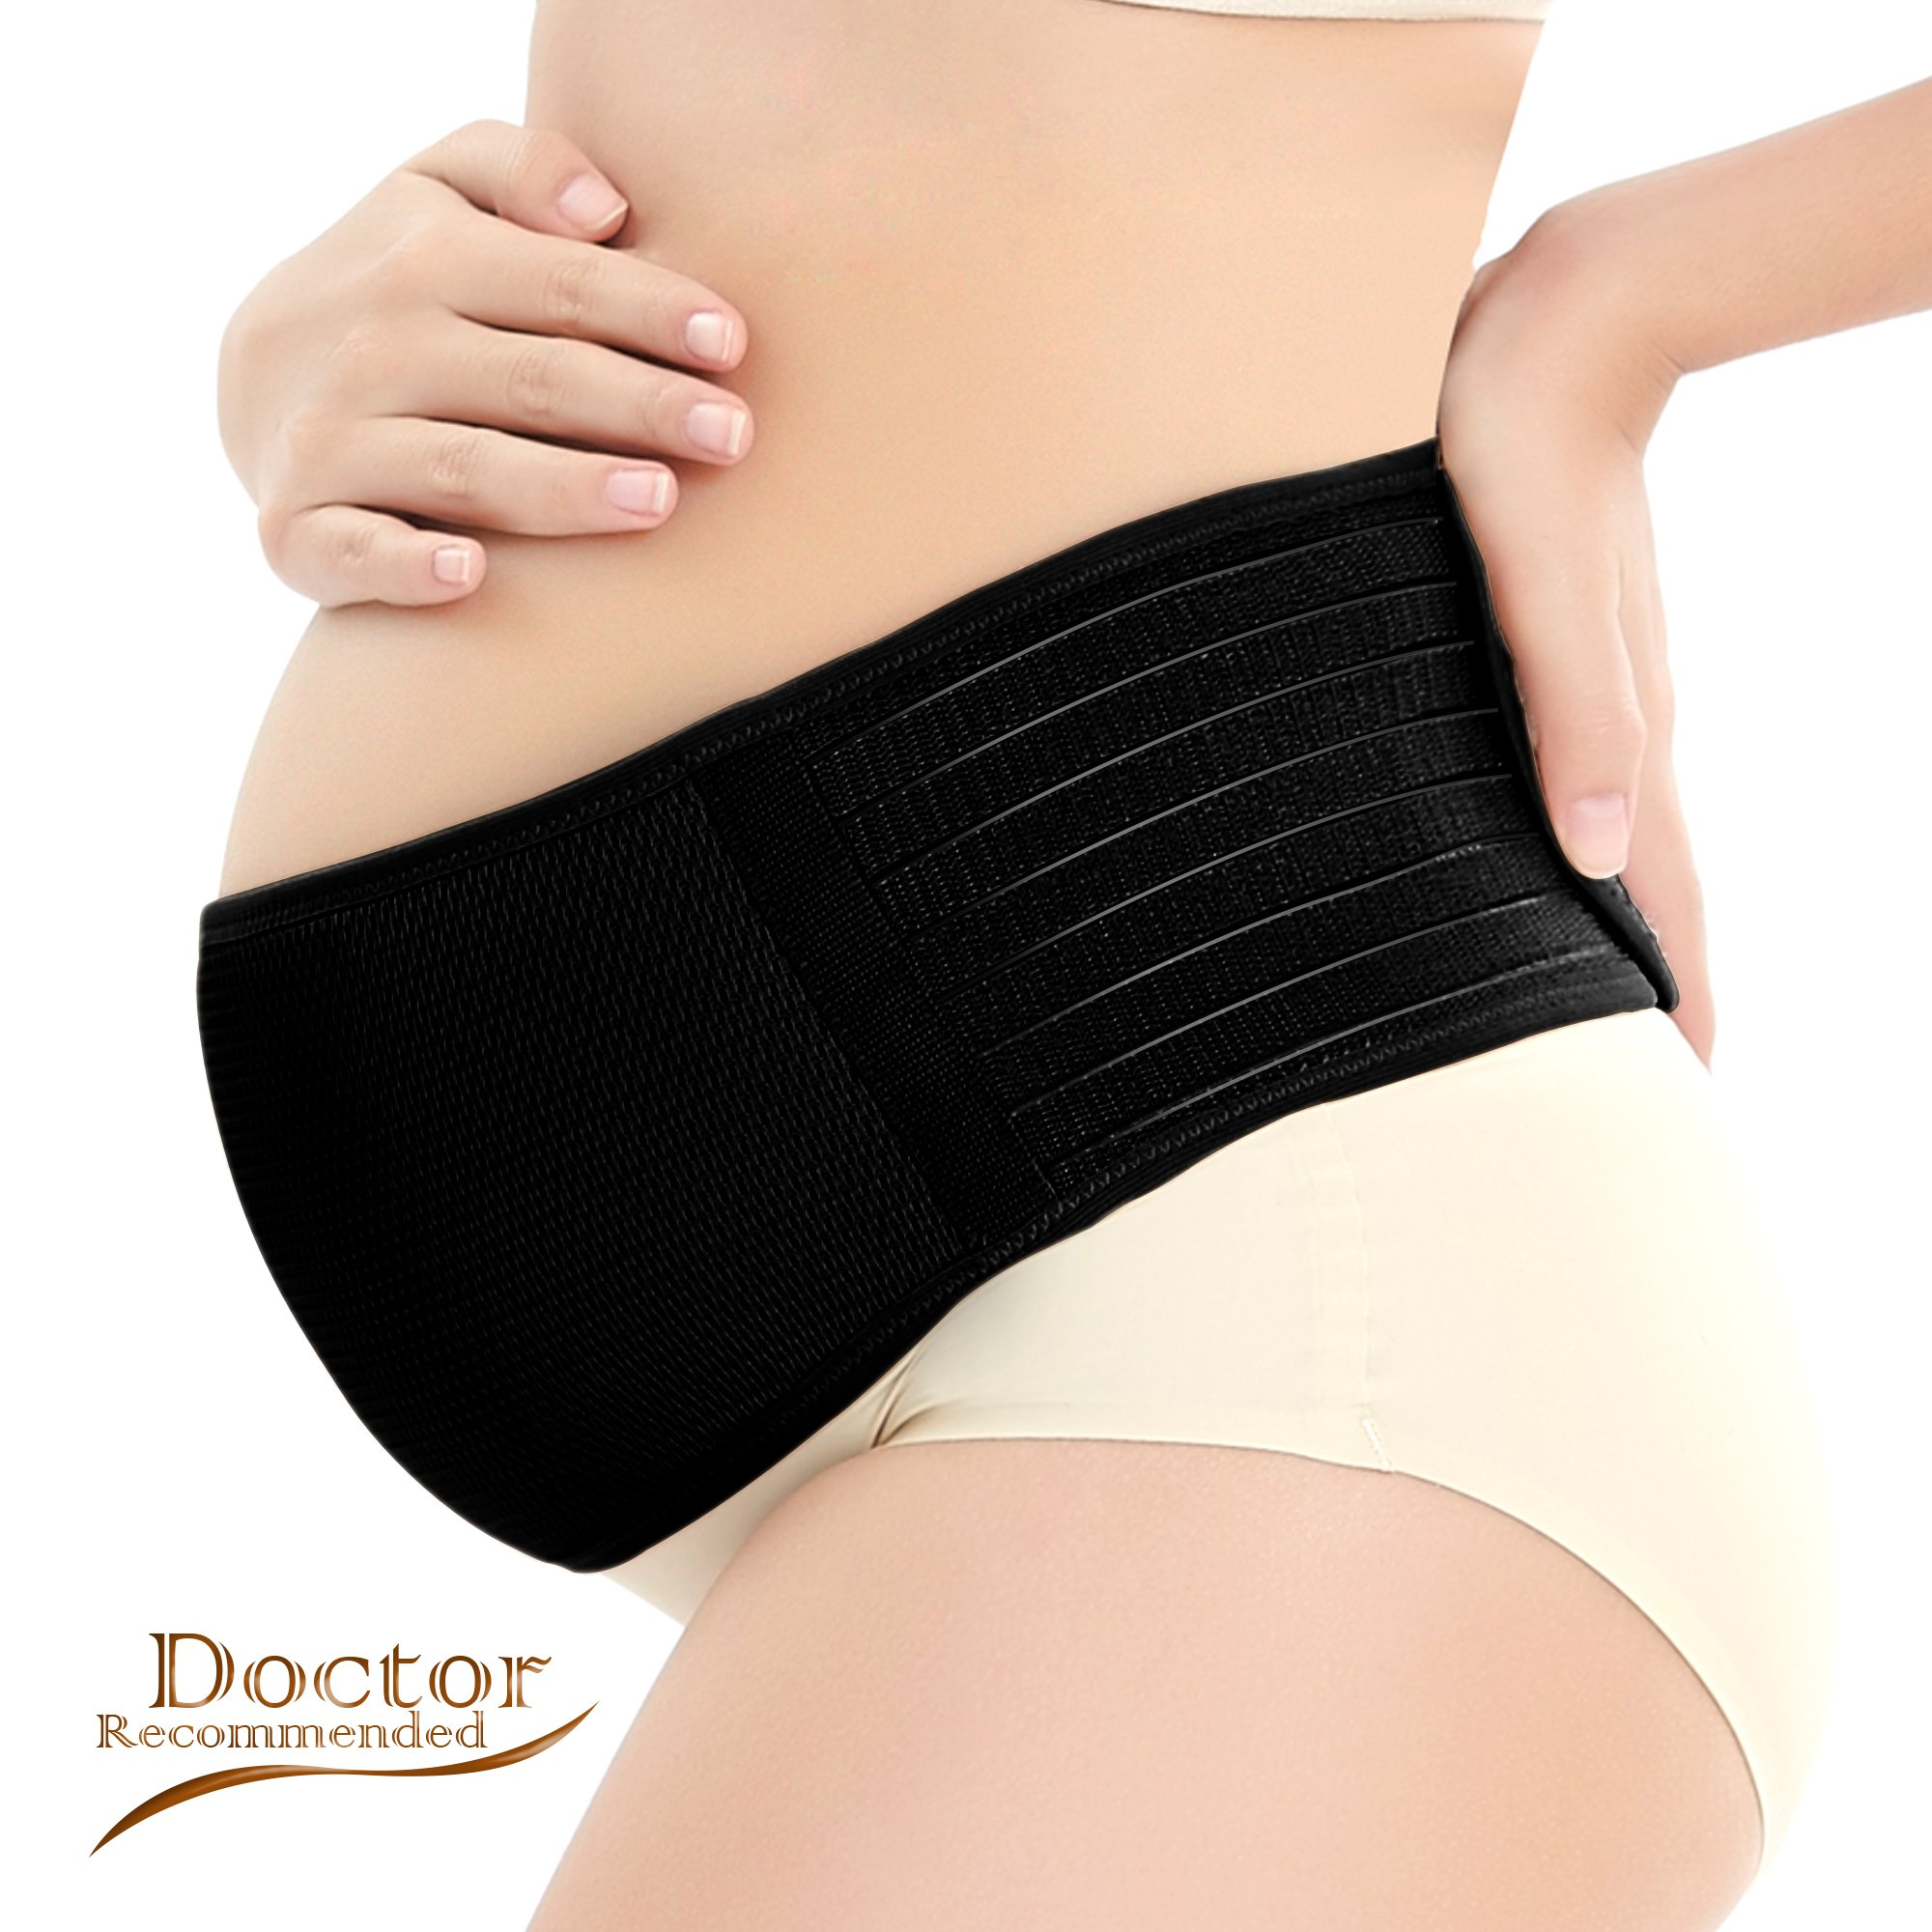 Vikes Maternity Support Belt- Breathable Pregnancy Belly Band Abdominal Binder- Adjustable Back/Pelvic Support- One Size